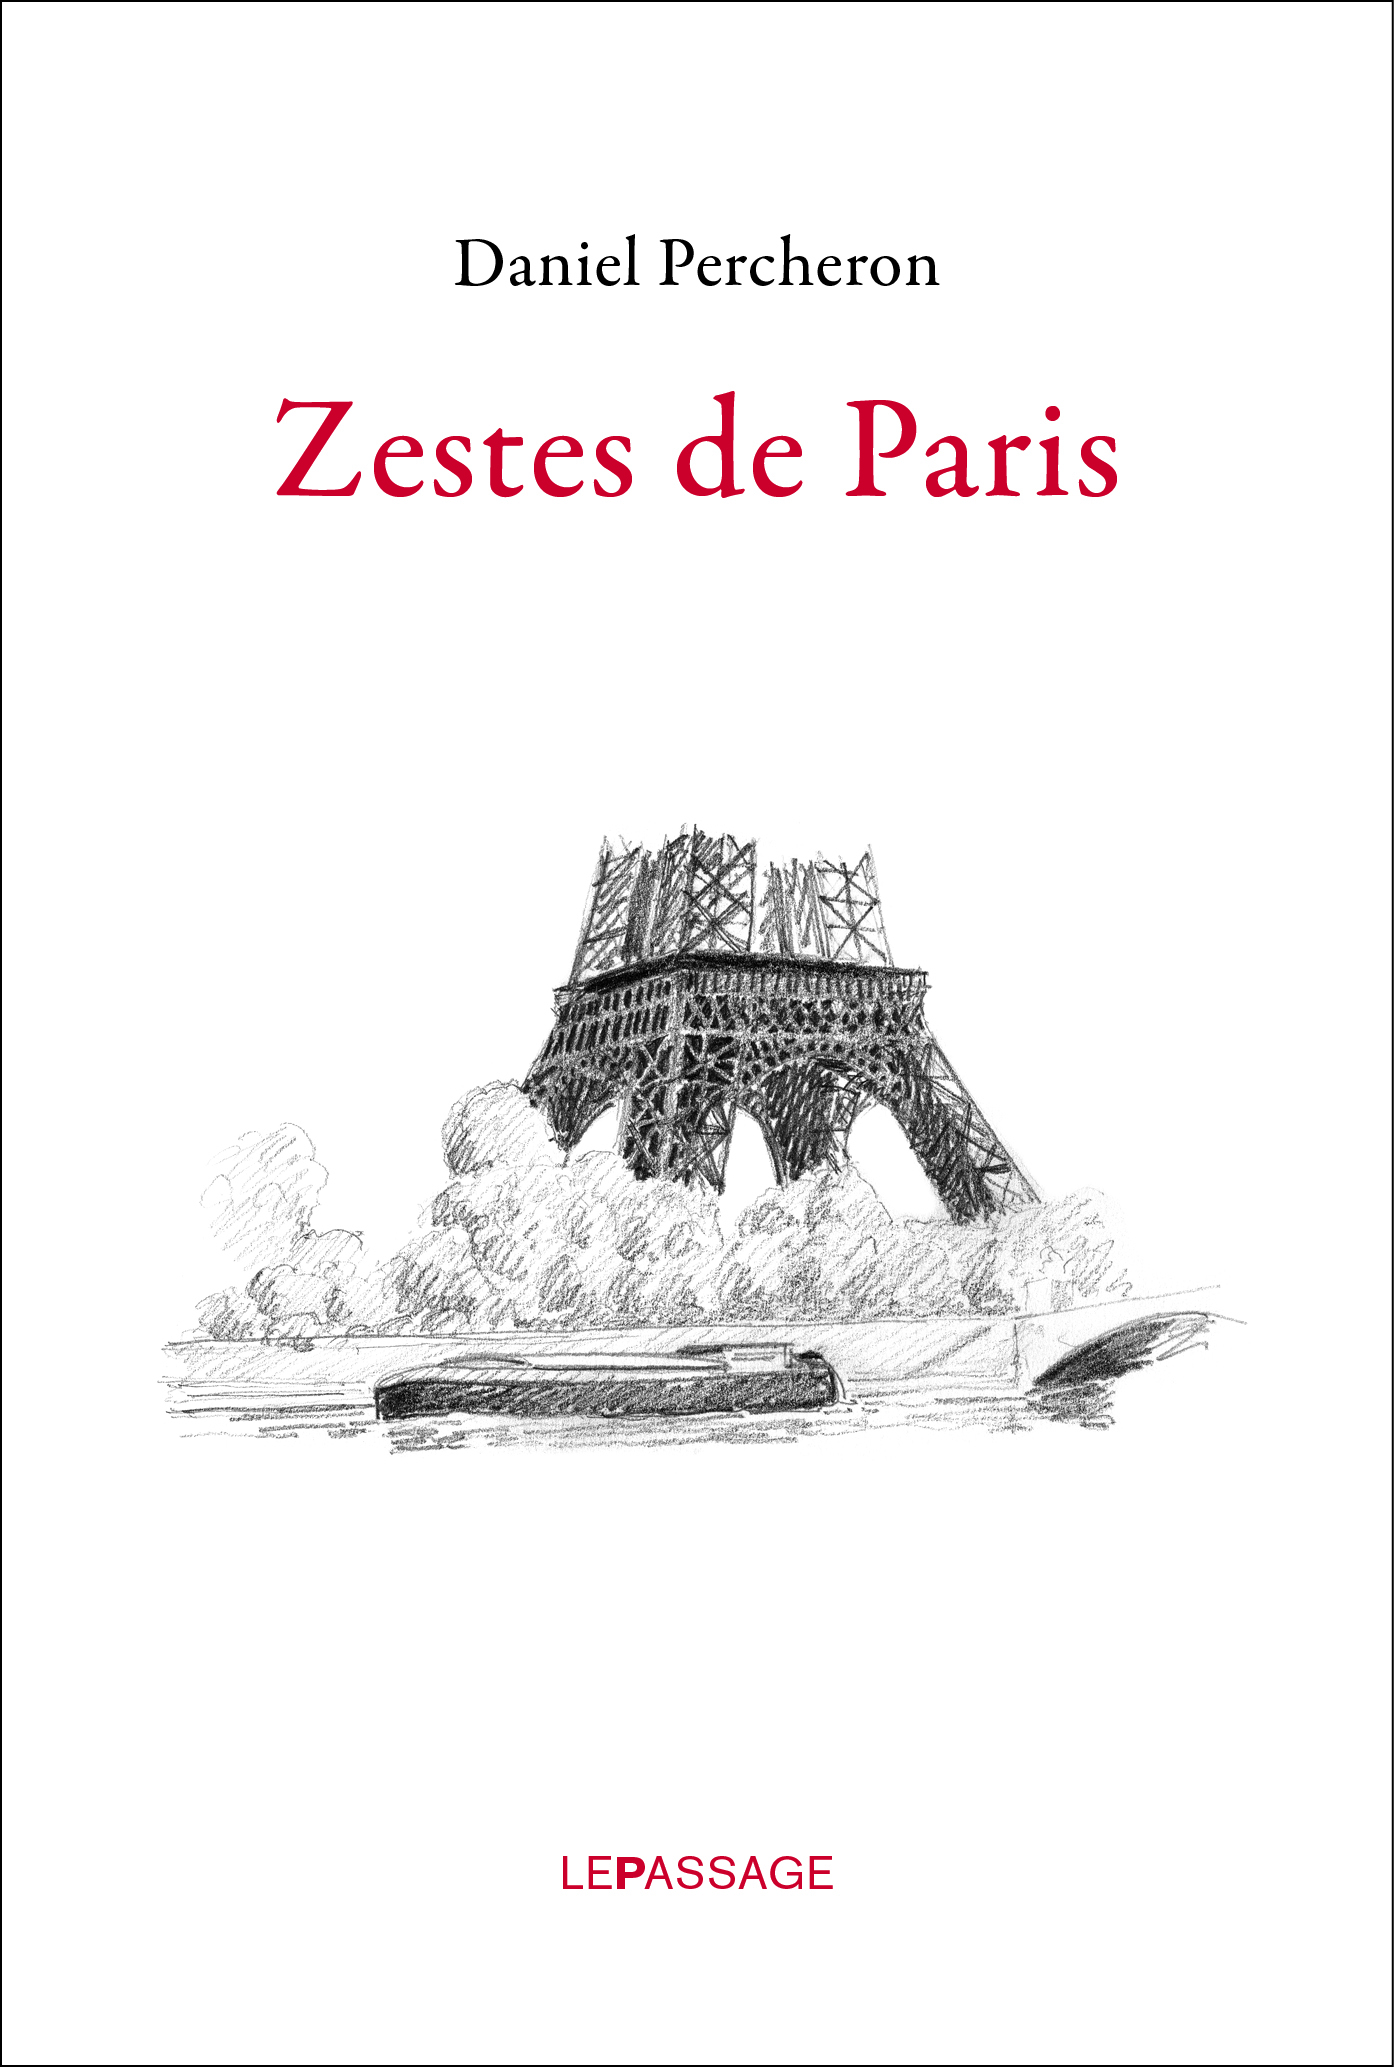 LePassage-Zestes_de_Paris-1re_Jaquette-(CMJN)